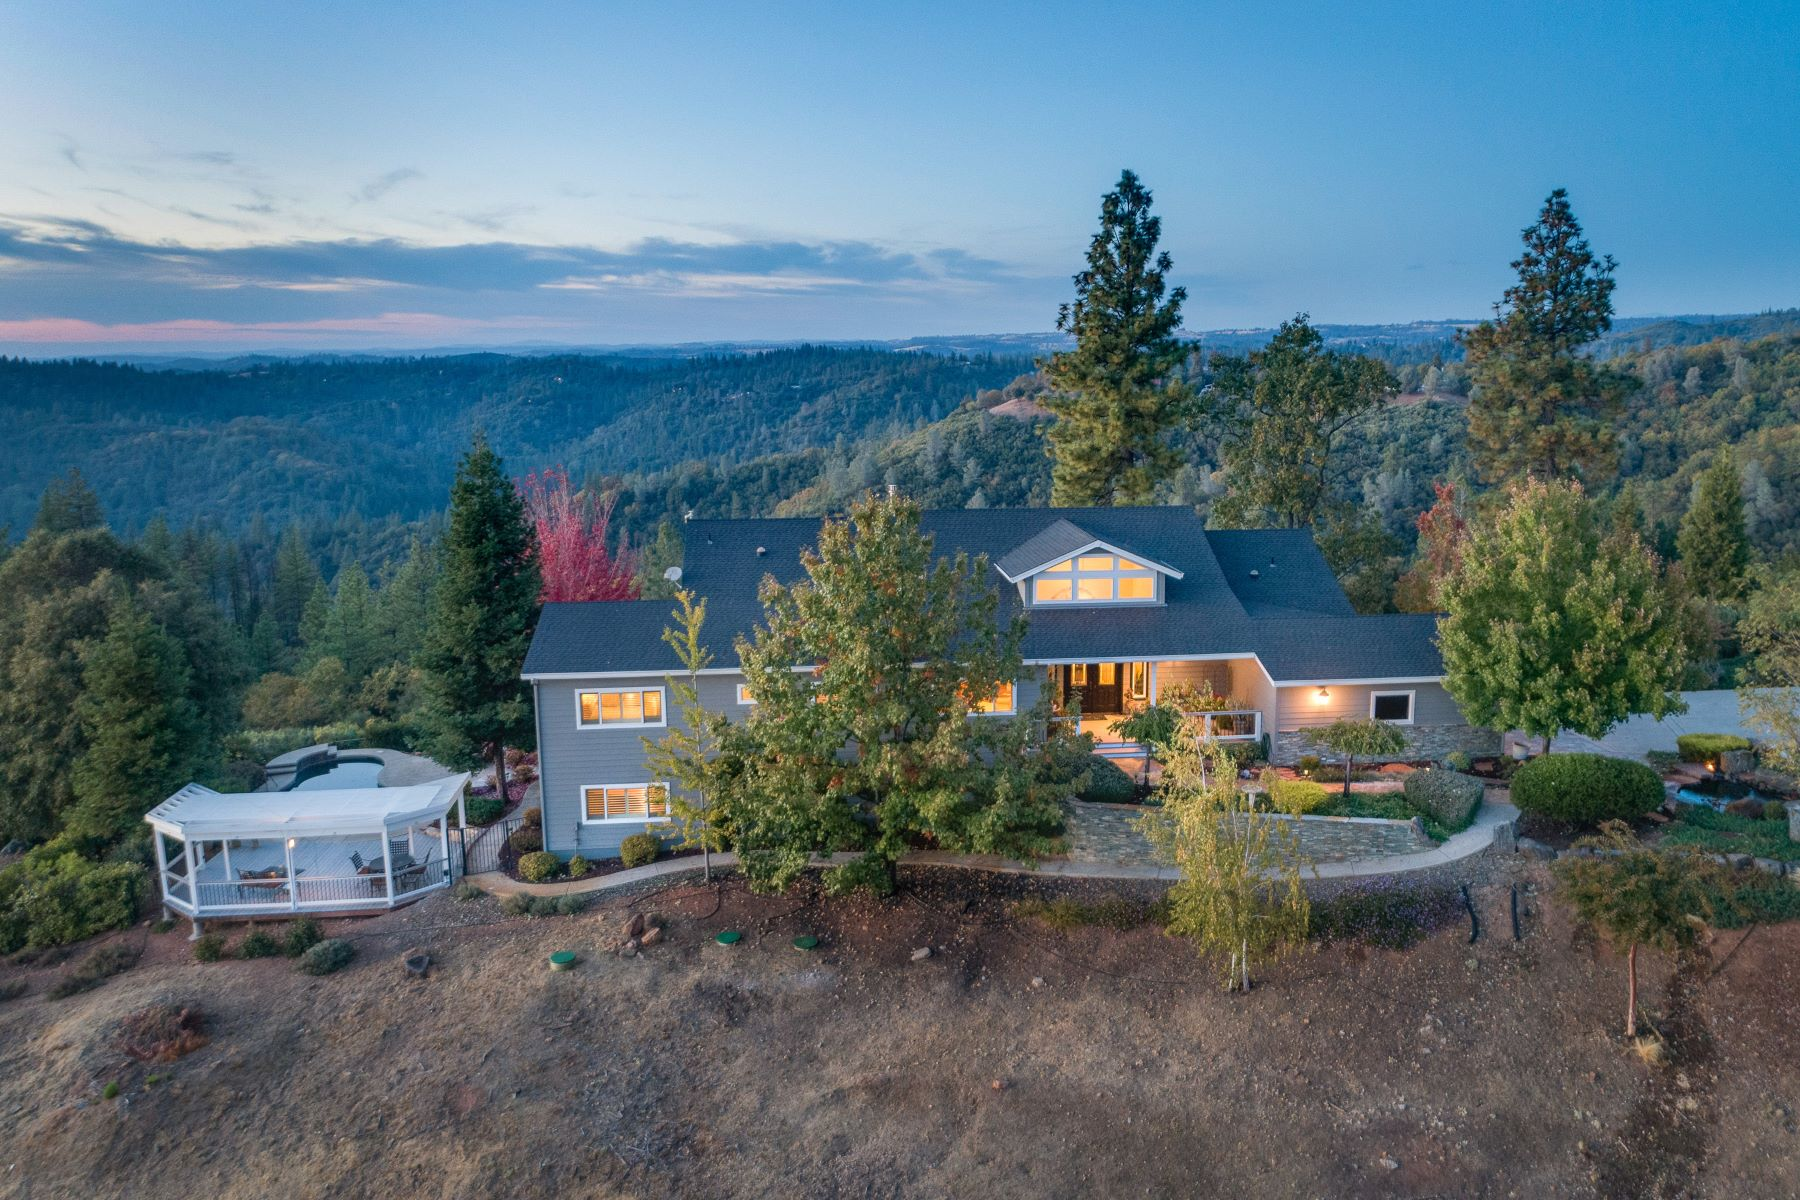 Single Family Homes for Sale at Breathtaking Panoramic Views 14750 Surrey Junction Lane Sutter Creek, California 95685 United States